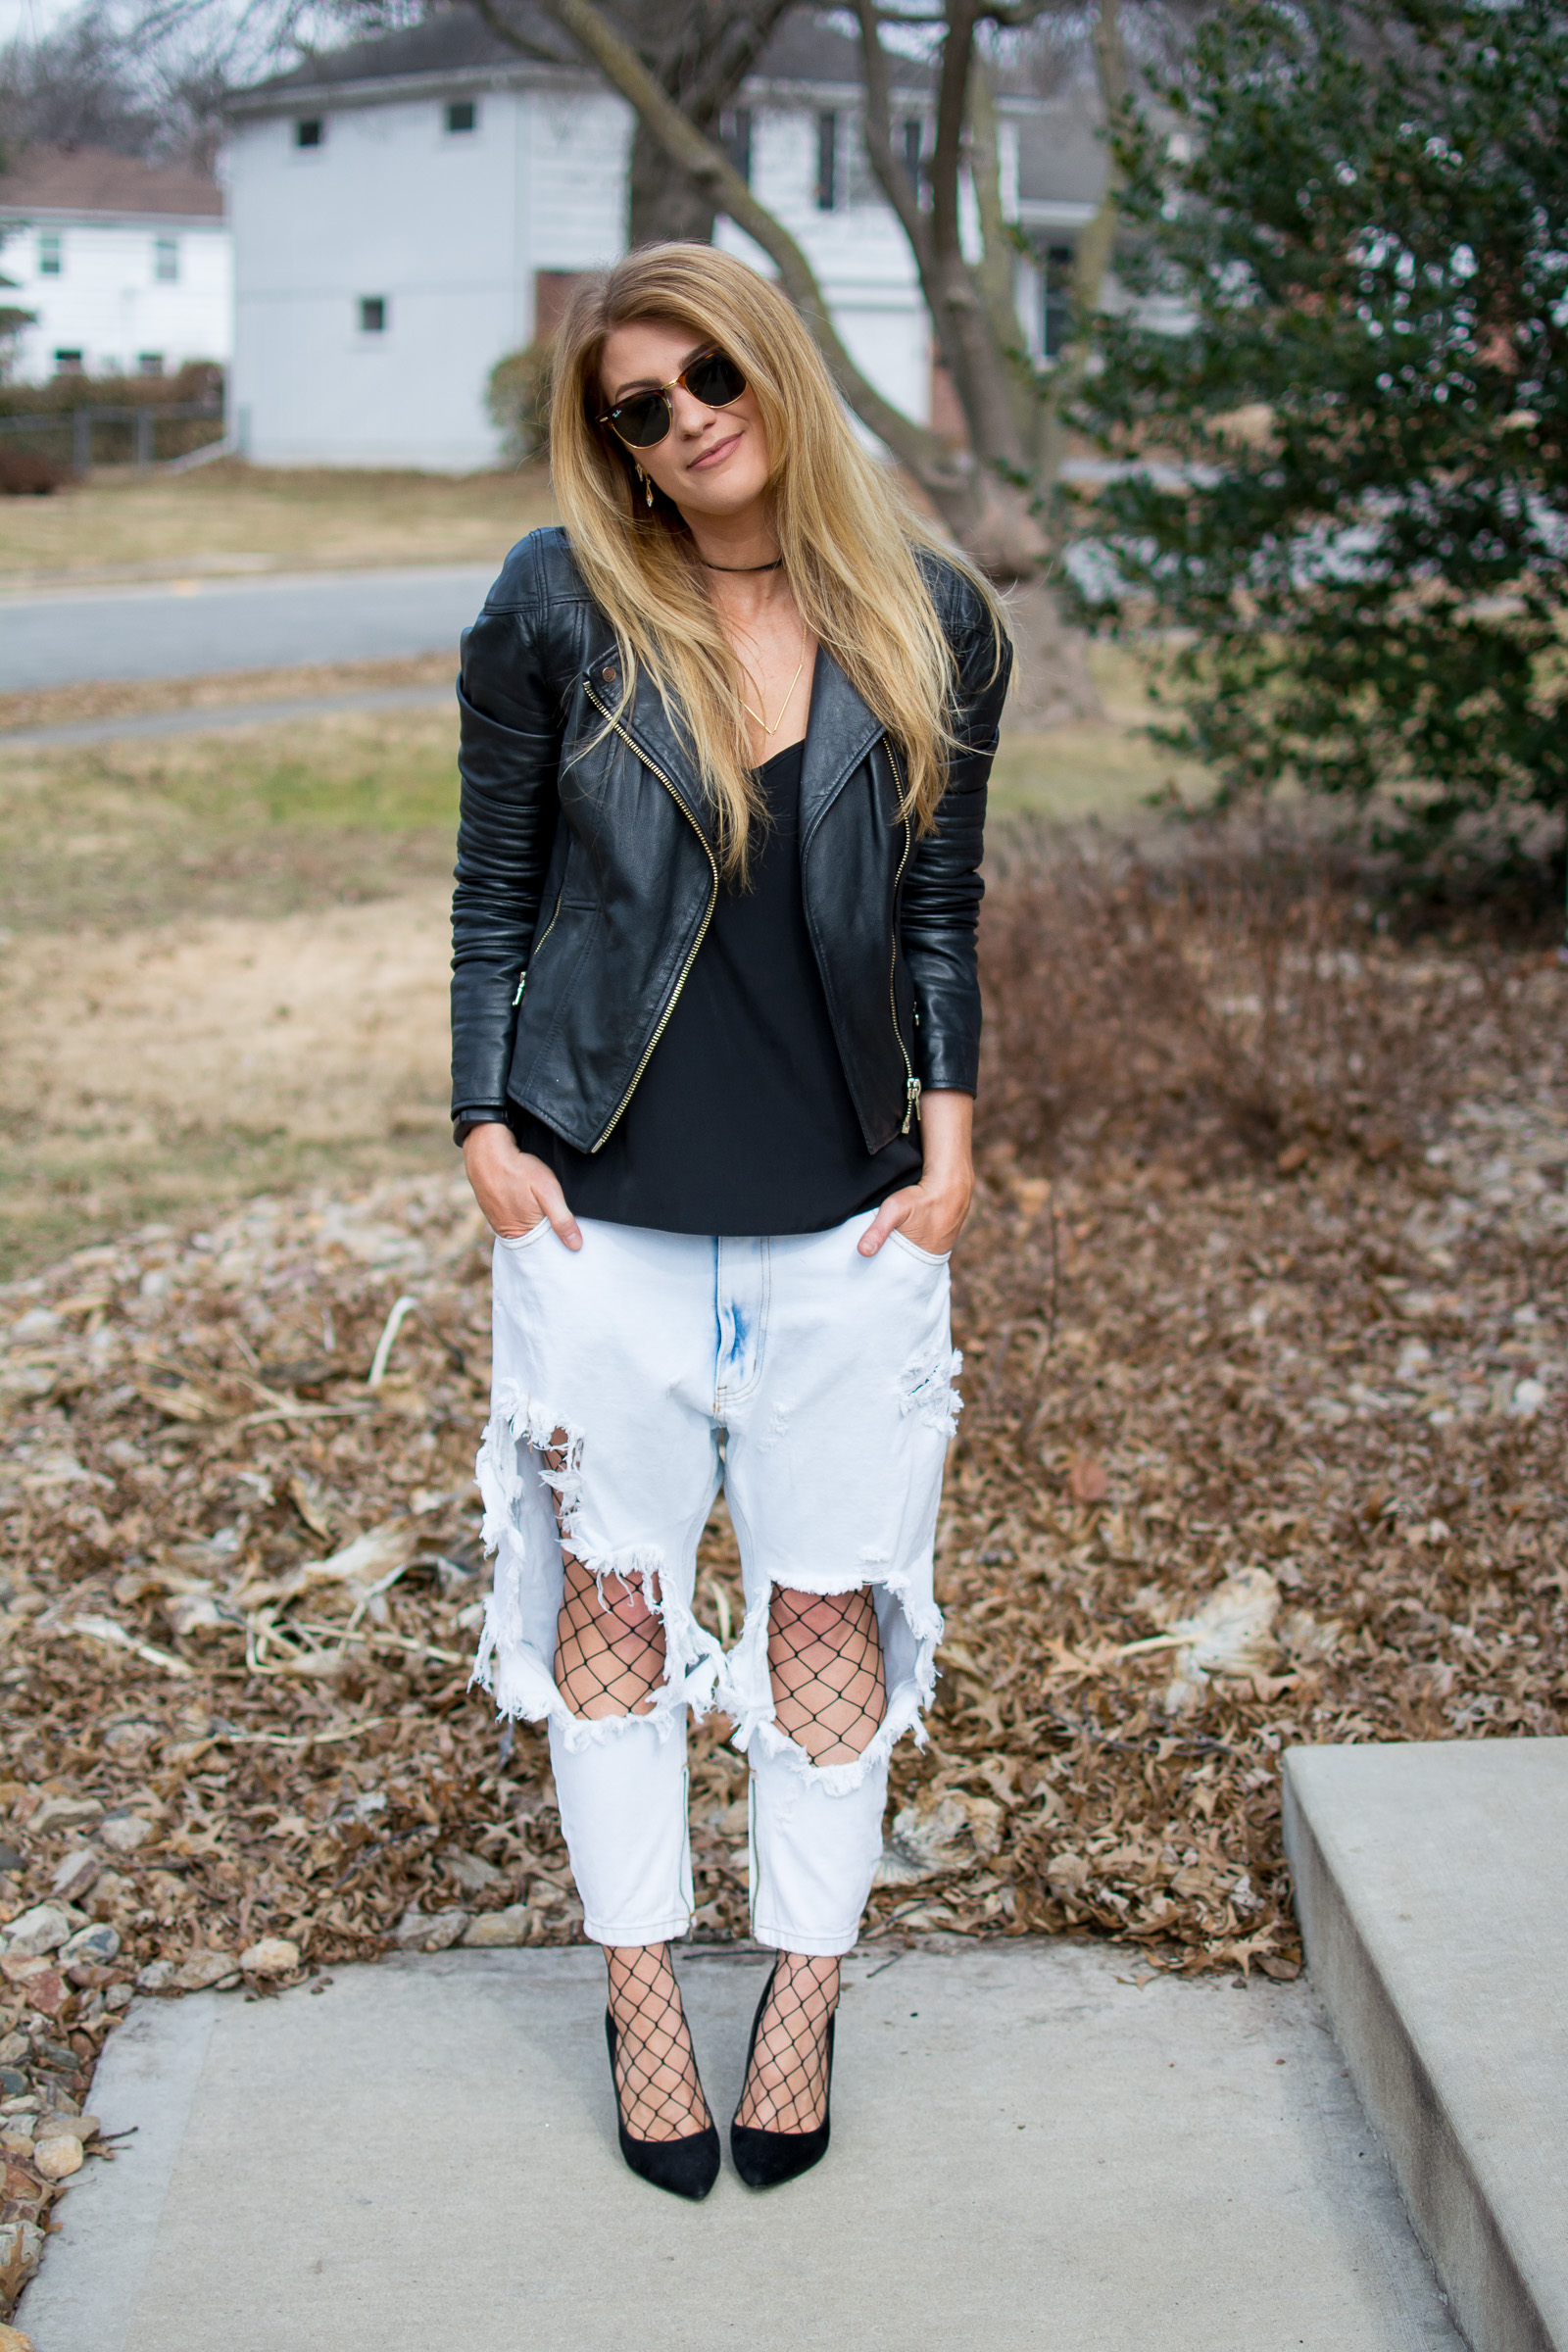 Super Destroyed Denim Jeans, Fishnets, and a Leather Jacket | Ashley from Le Stylo Rouge